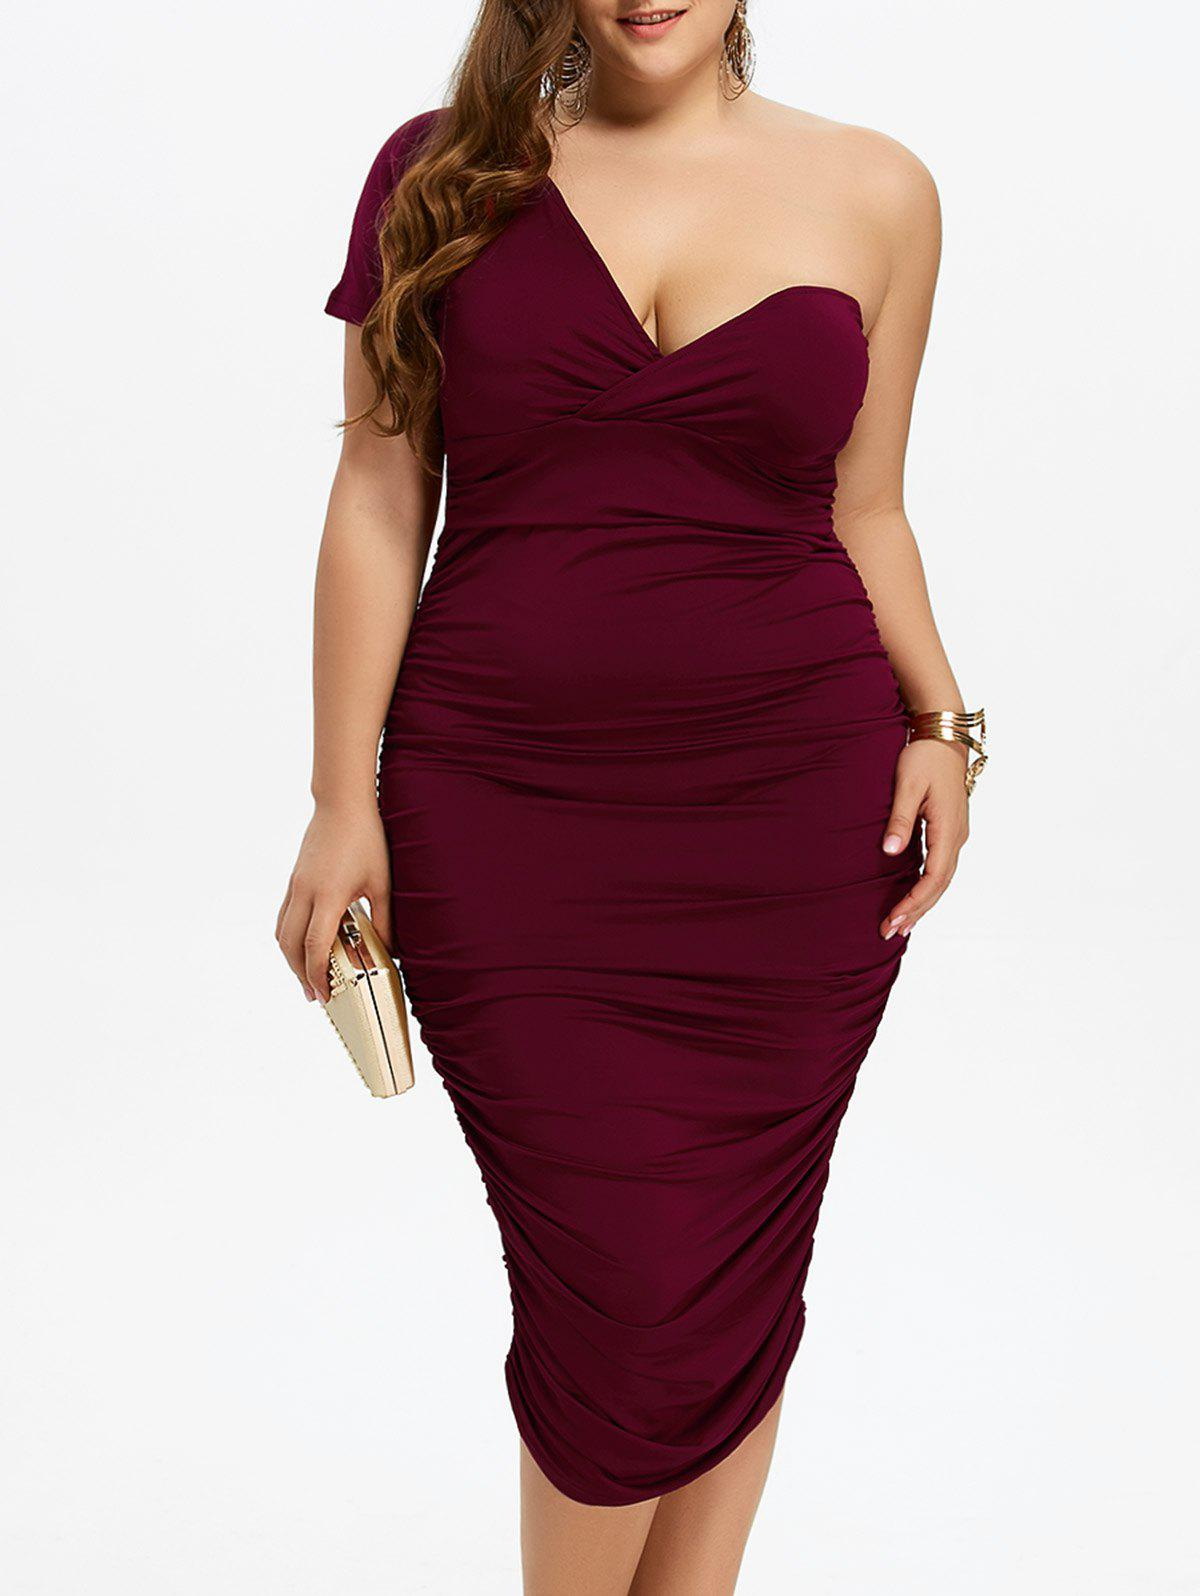 Wine Red 2xl One Shoulder Bodycon Prom Plus Size Cocktail